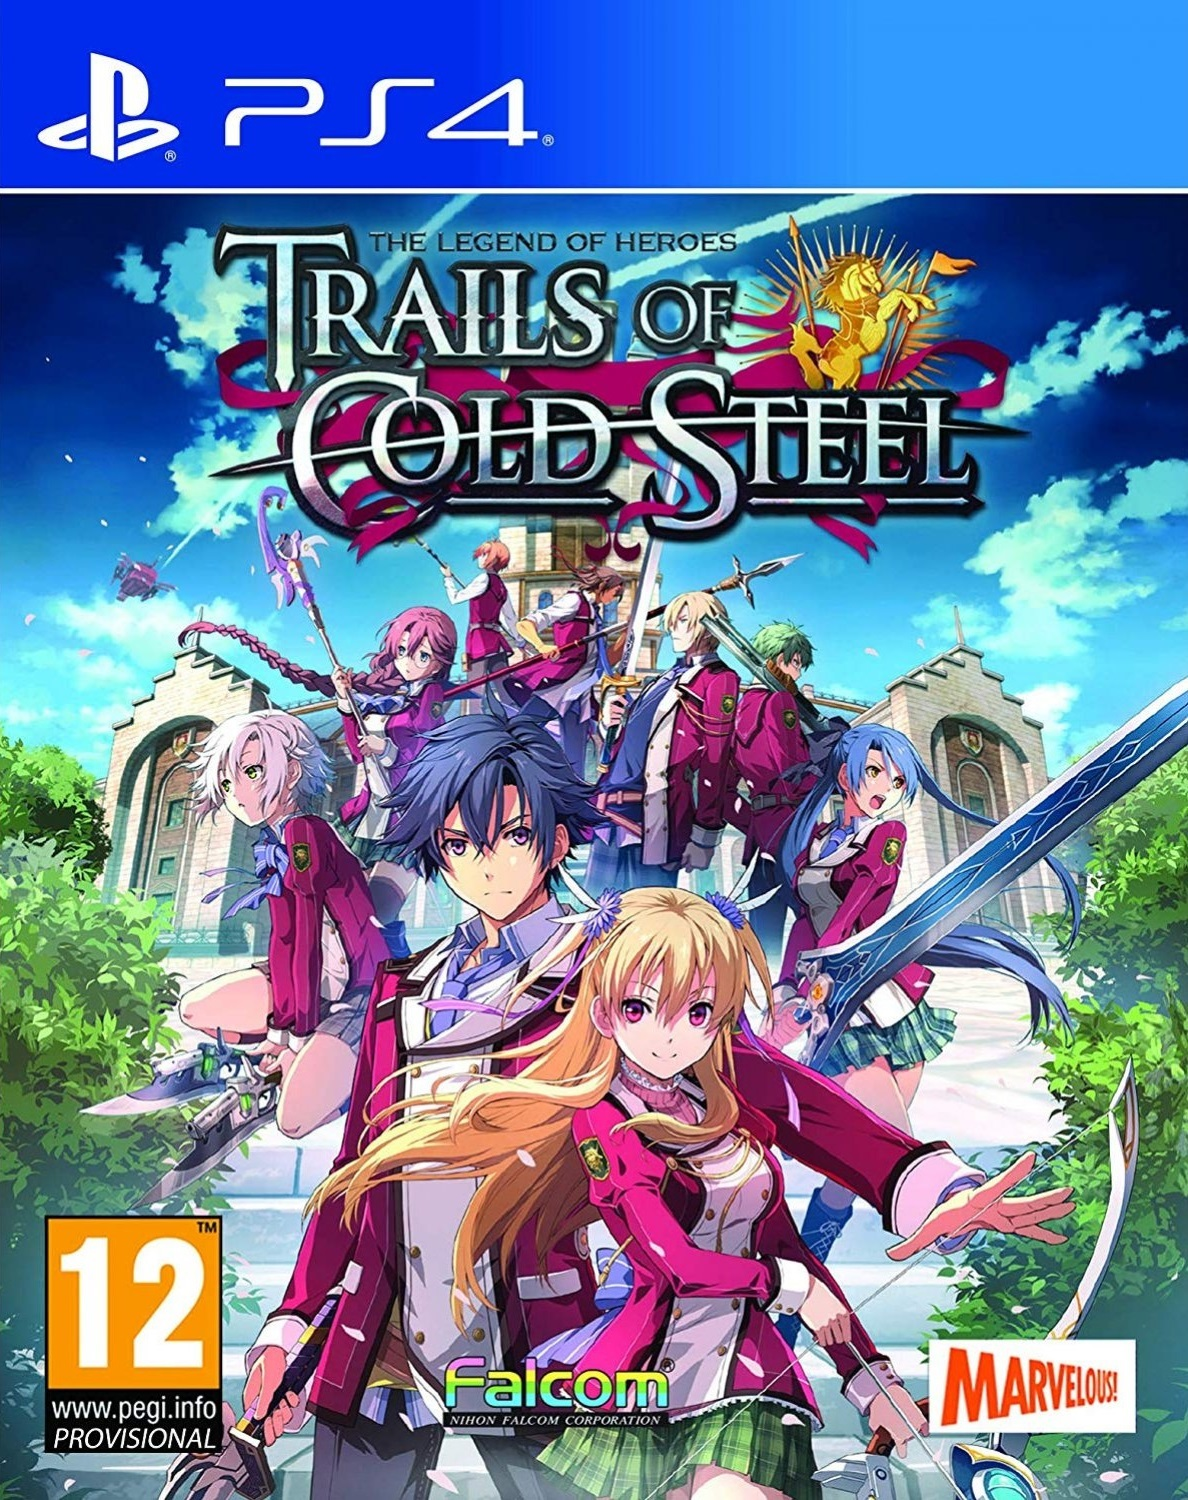 the-legend-of-heroes-trails-of-cold-steel-579153.1.jpg